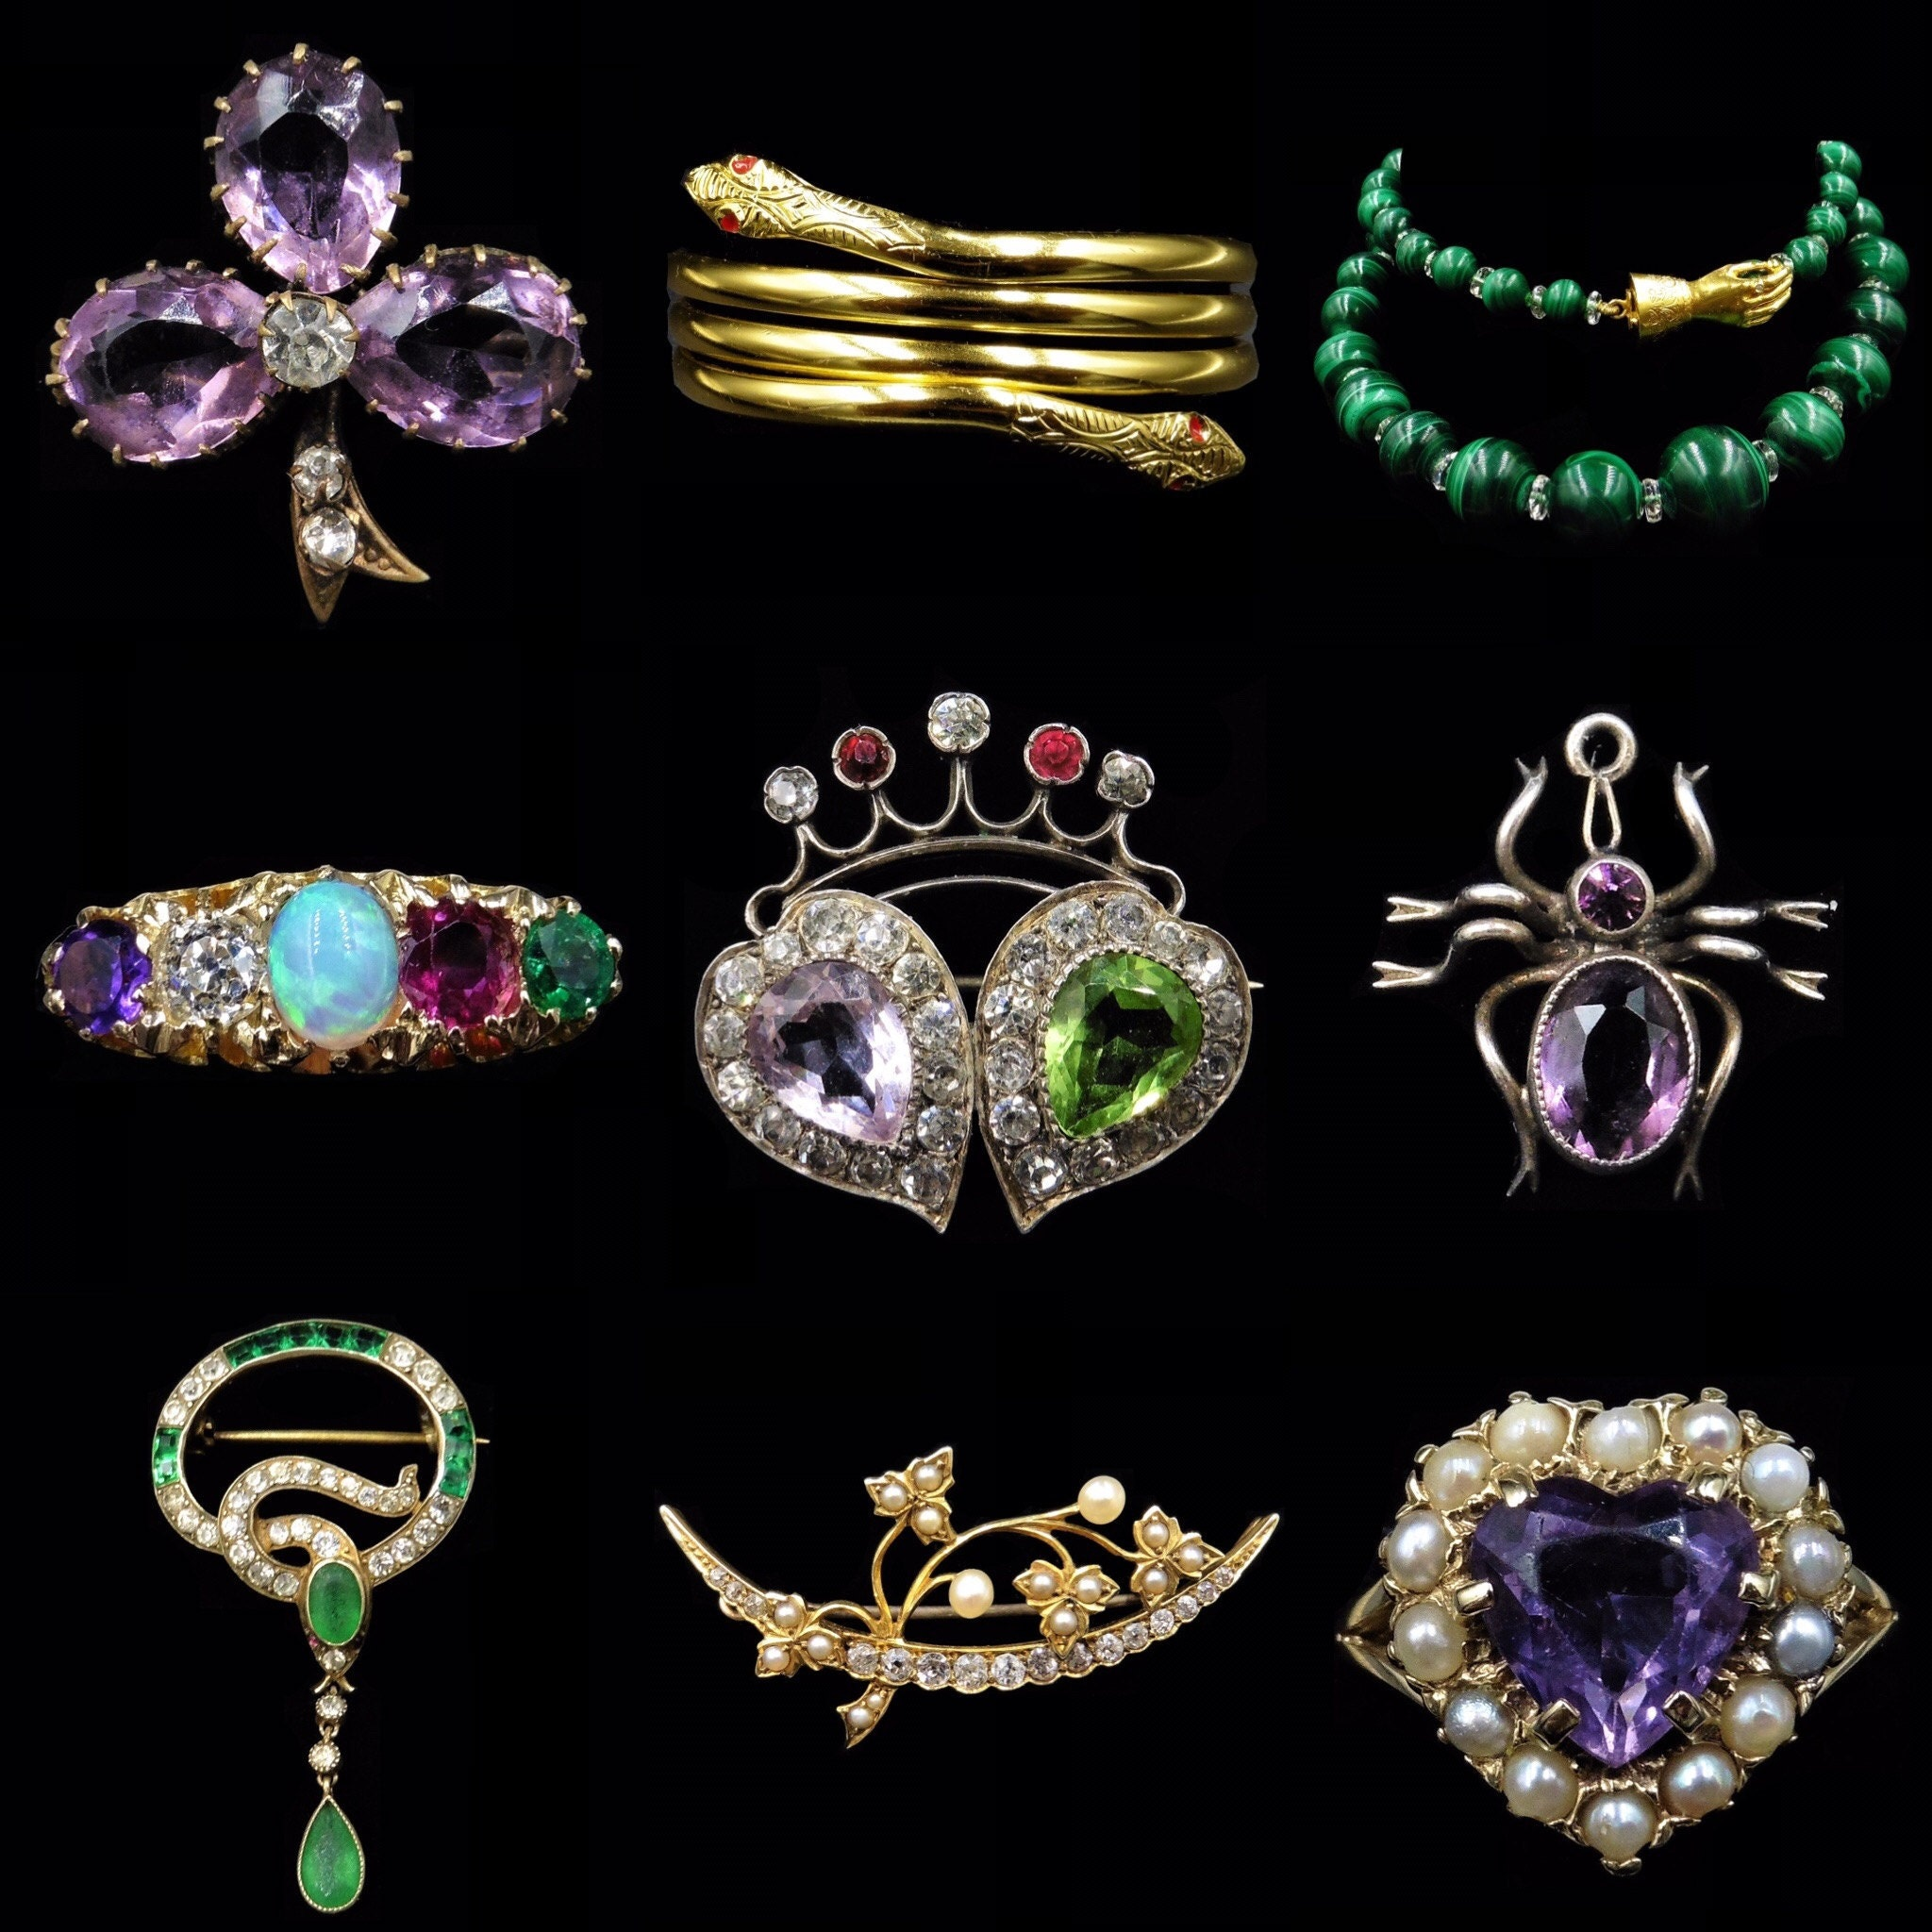 Collage of Symbolism in Jewellery